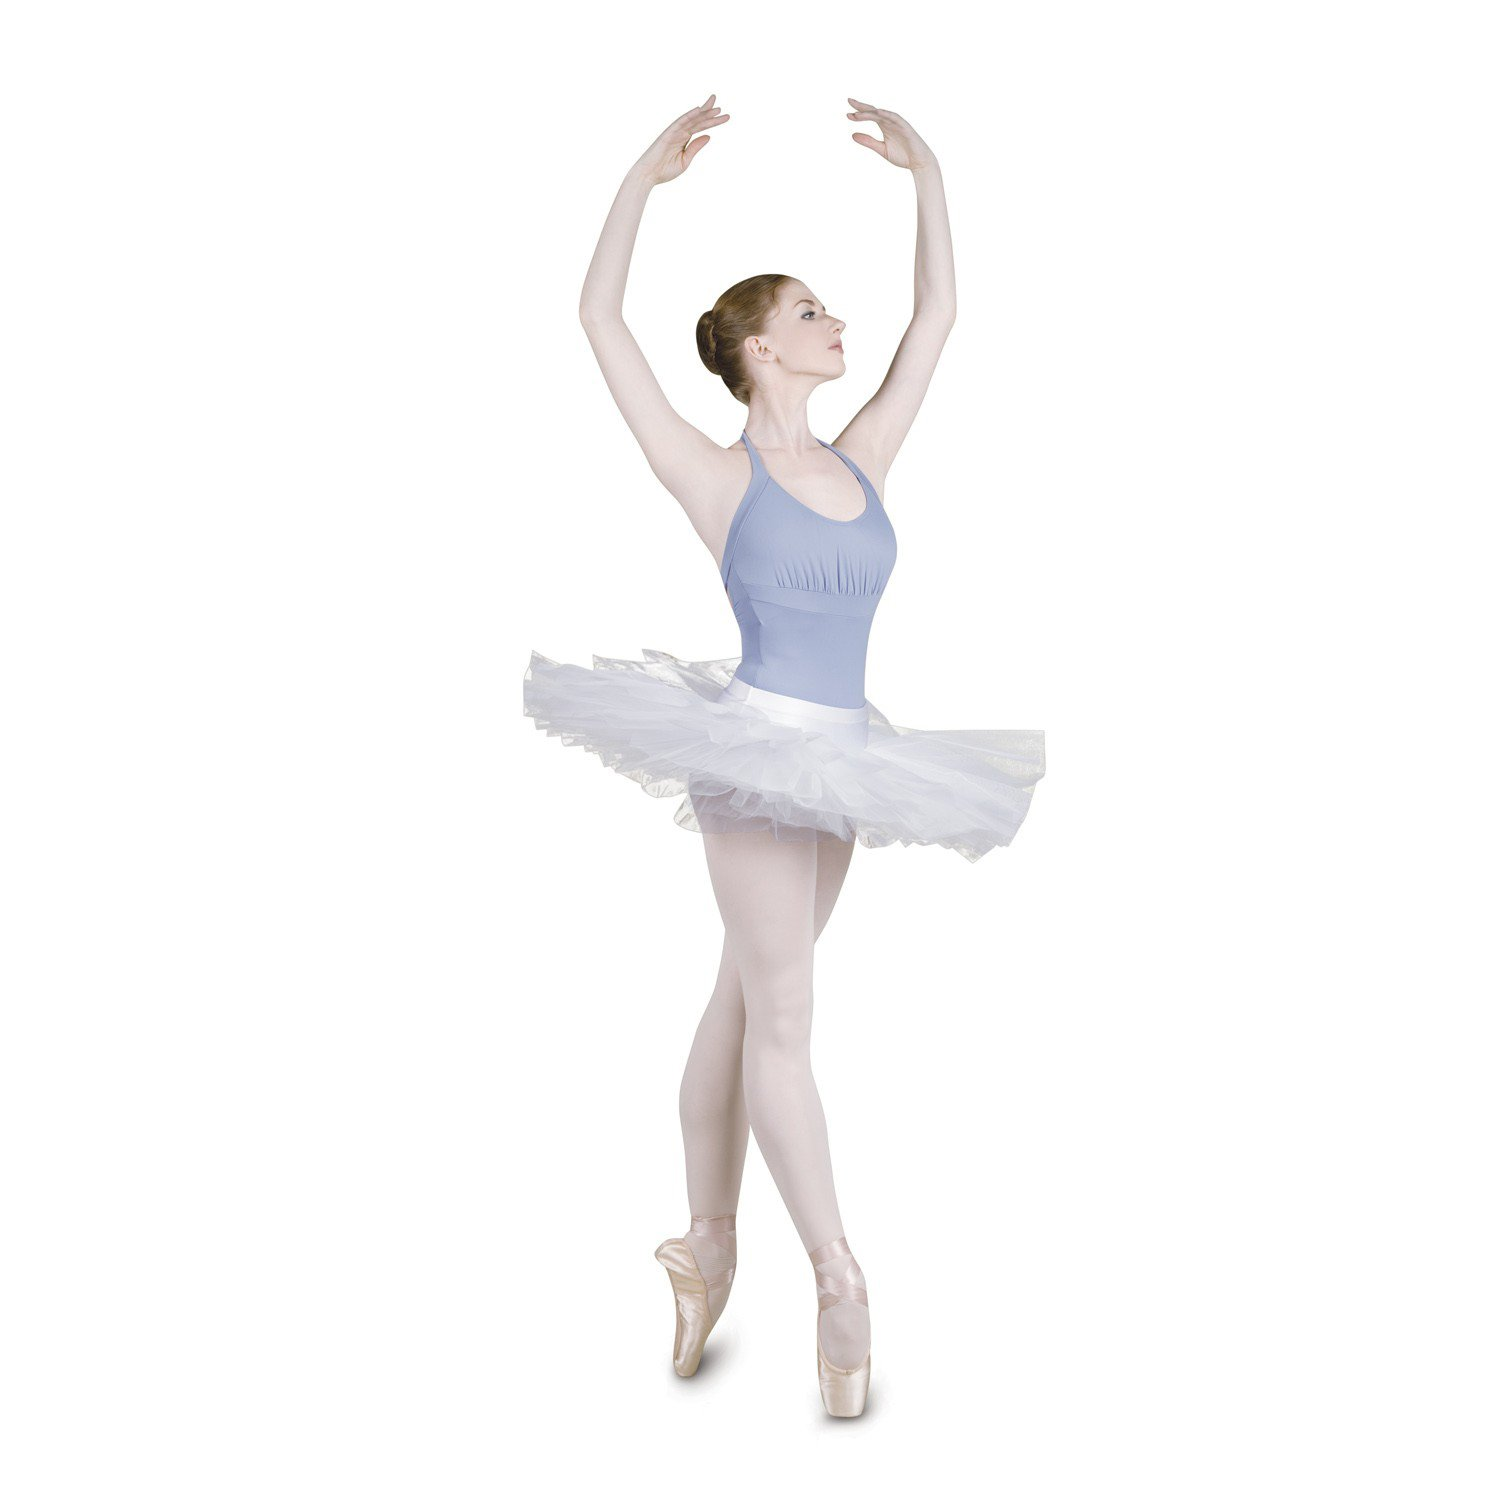 Sansha Paquita 7 Layers Semi-professional Tutu Trunk